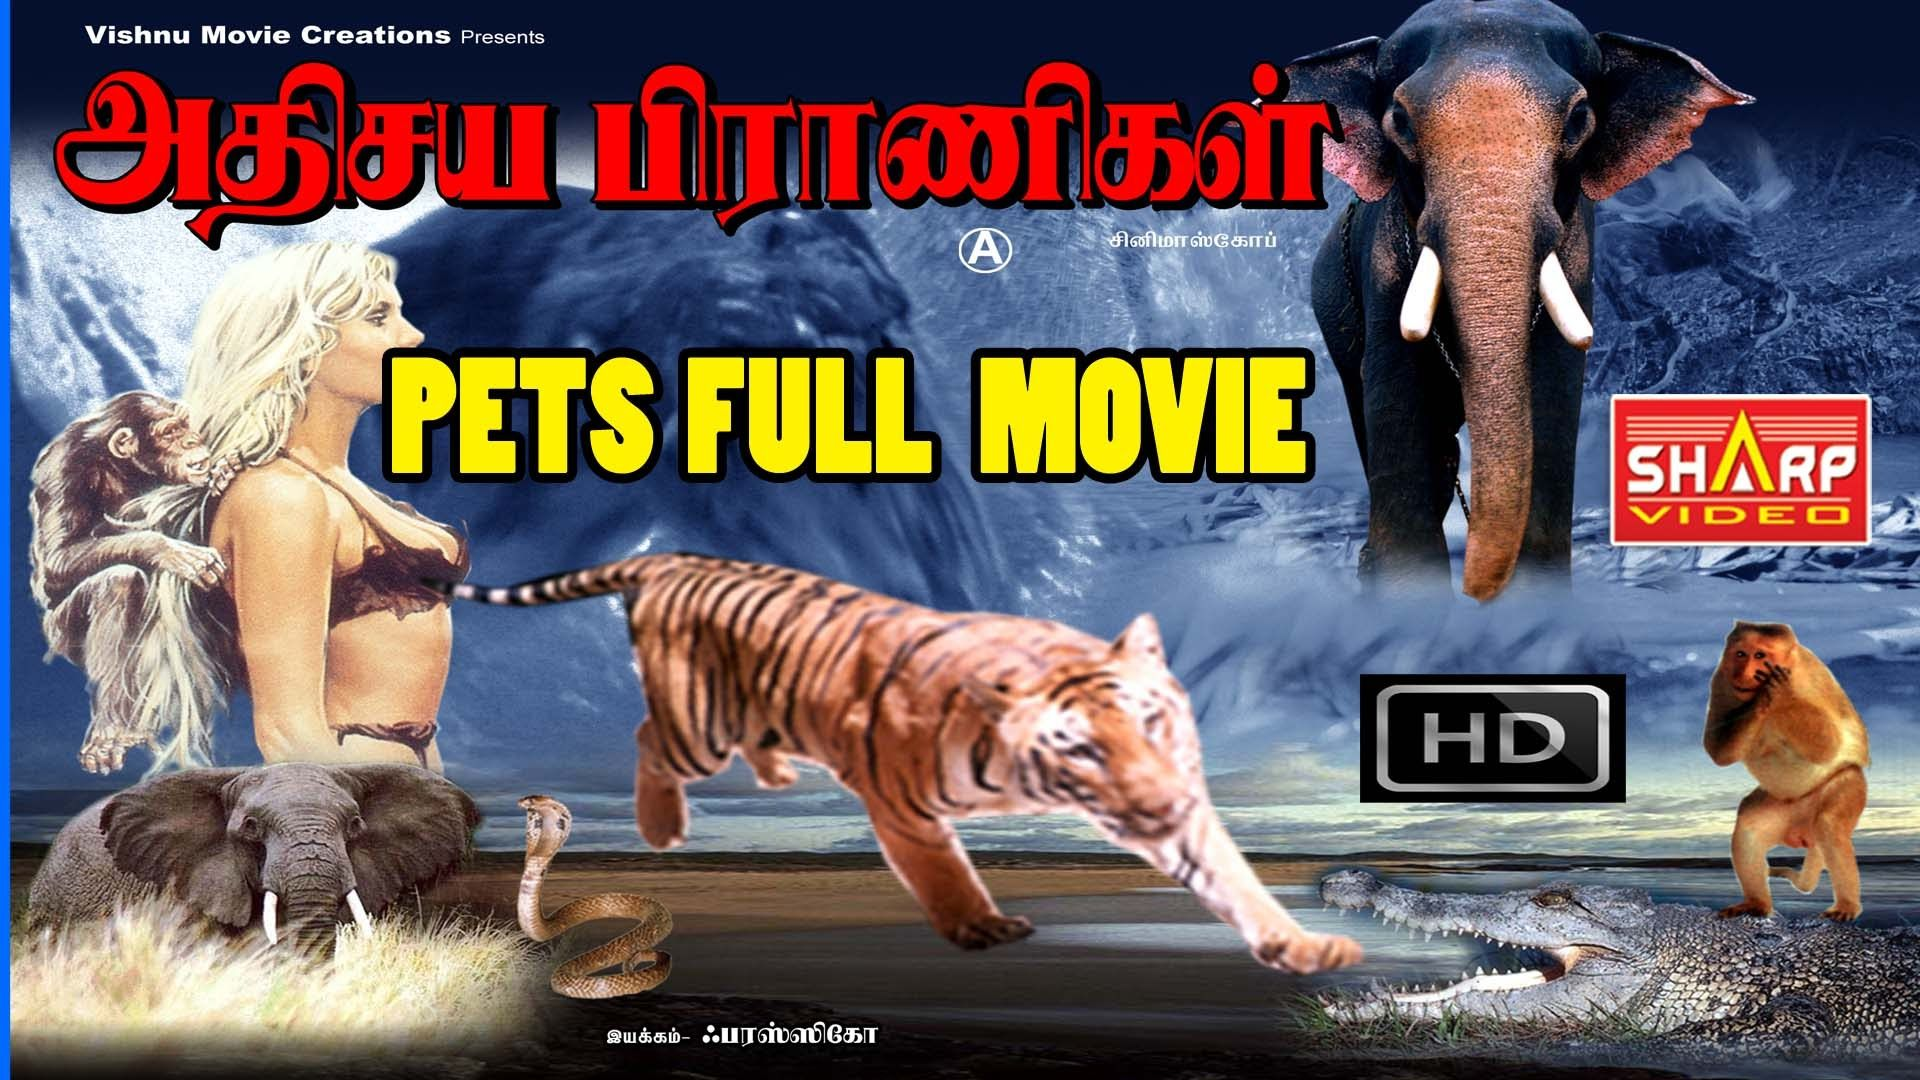 Action Hd Tamil Dubbed Movie Hollywood Tamil Movie Pets Hd Movies Pets New Movies